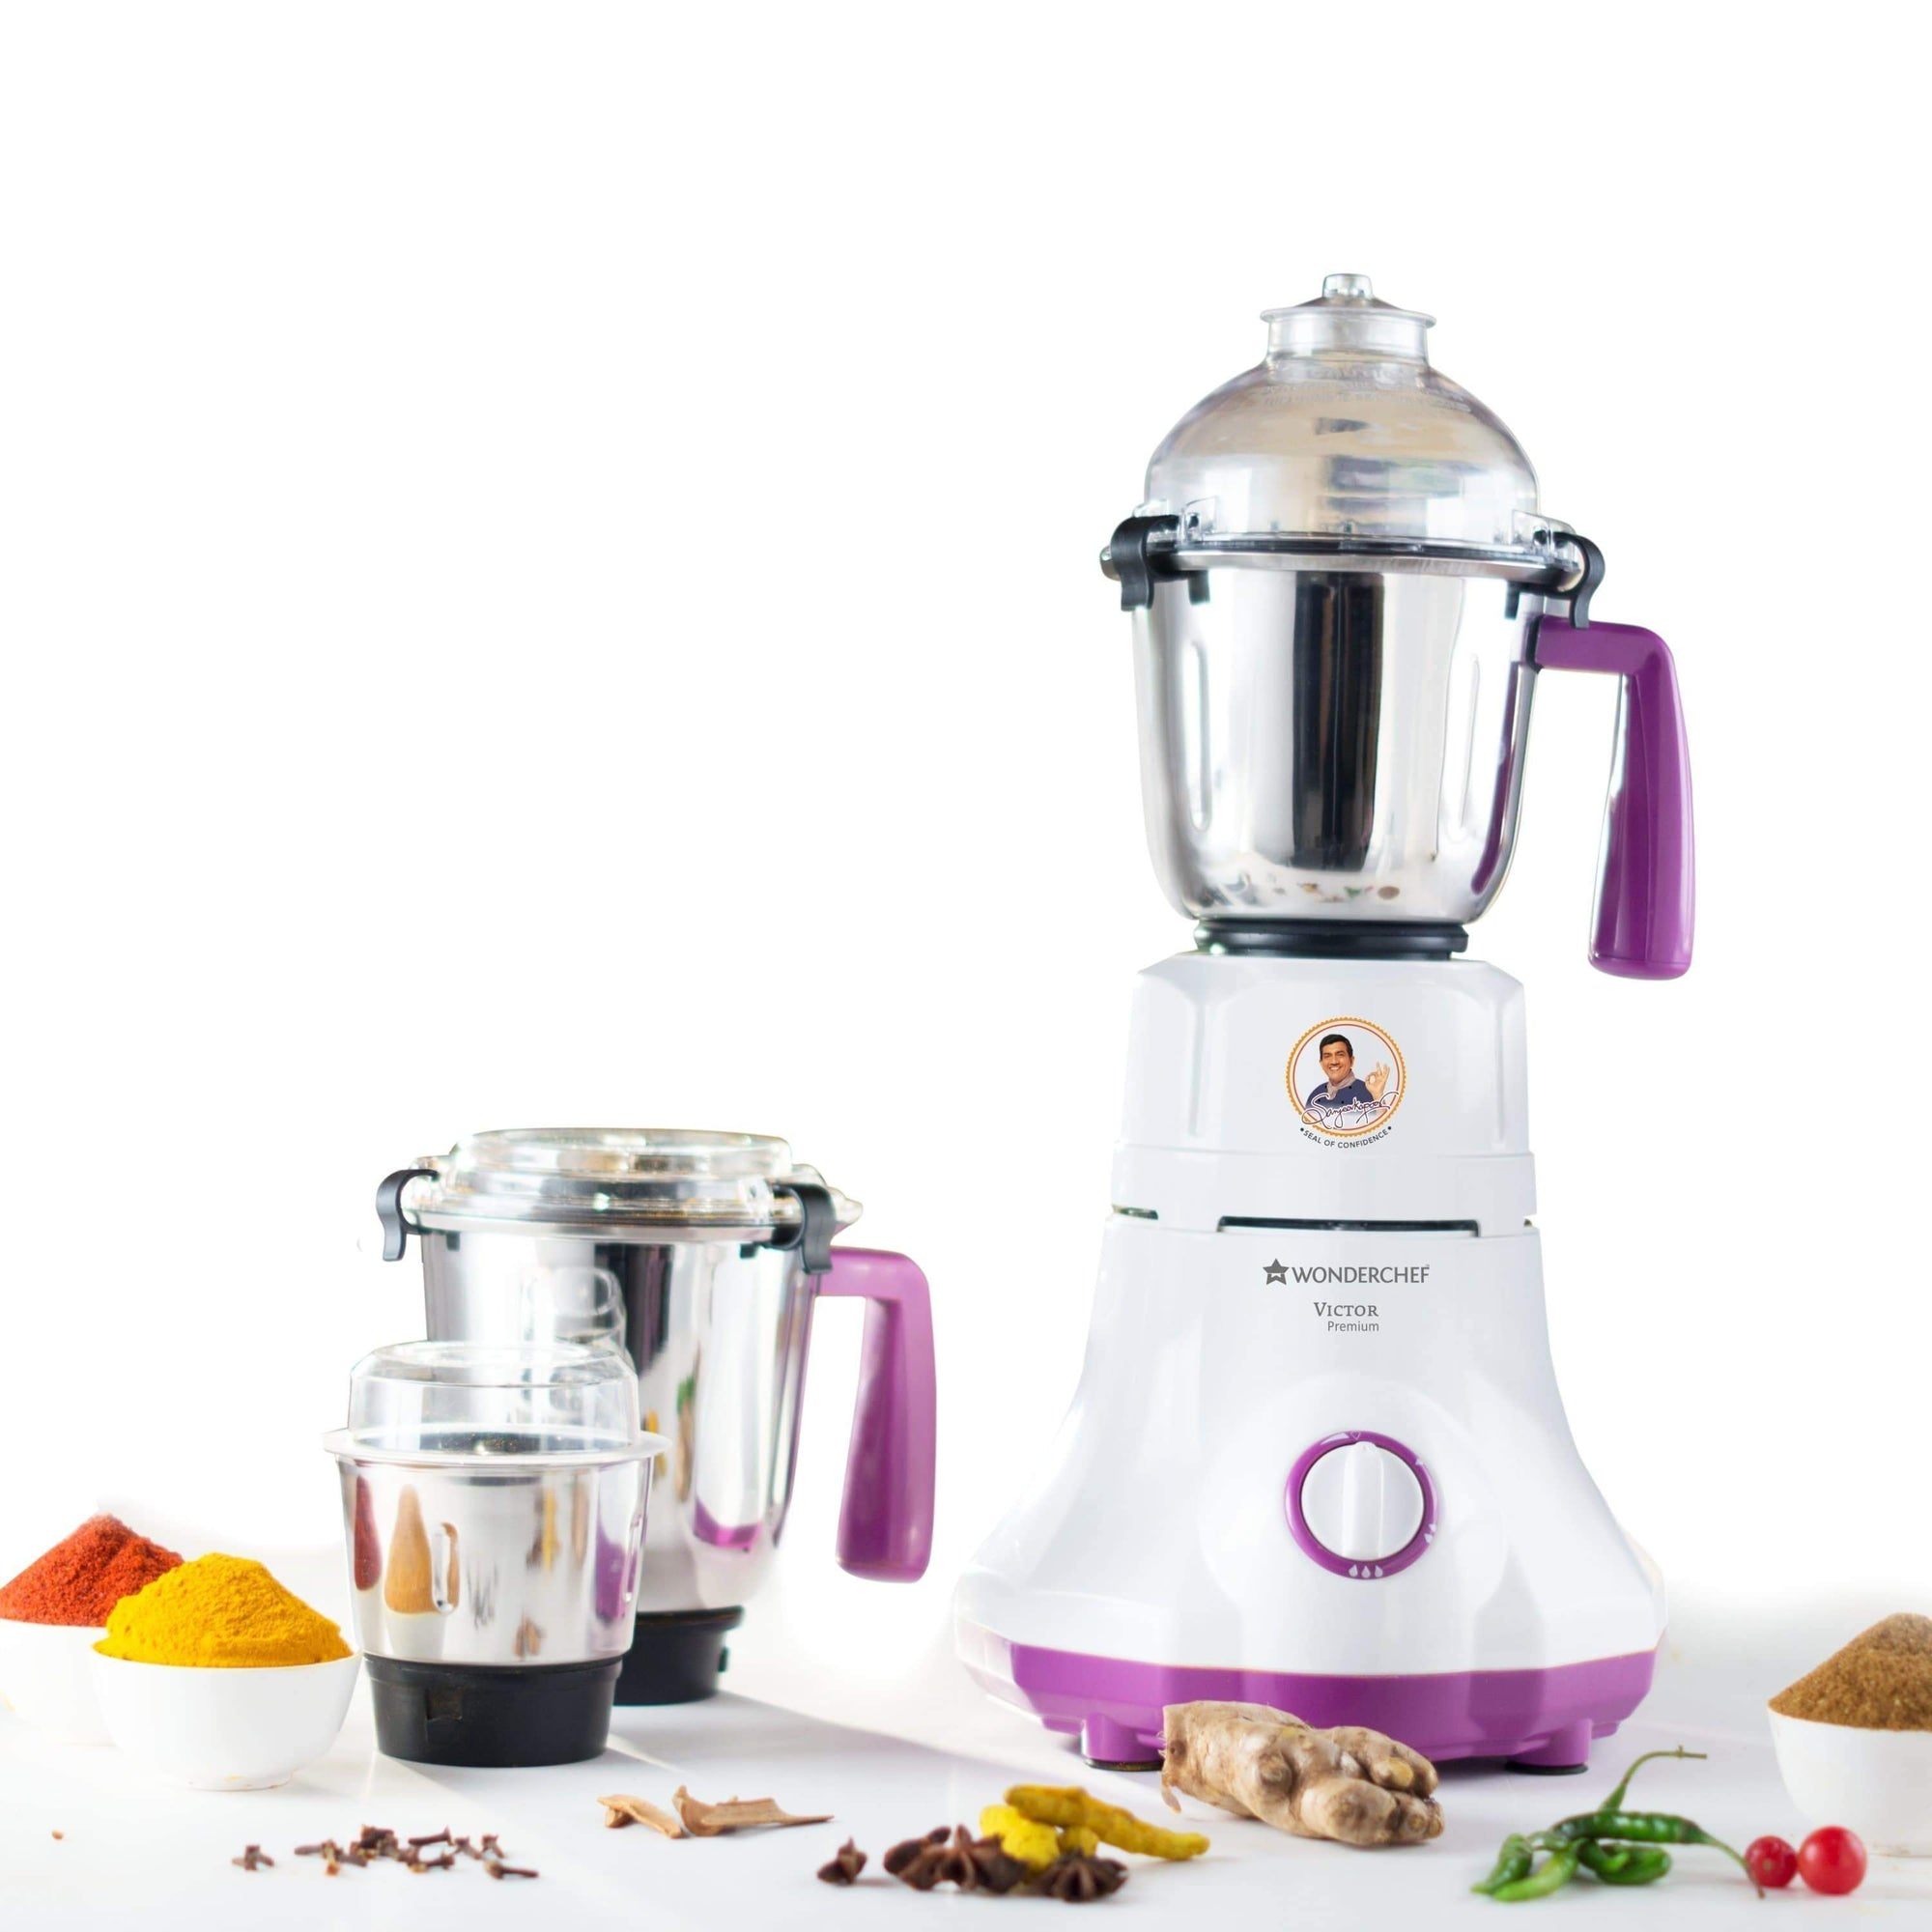 Victor Premium 750W Mixer Grinder with 3 Jars (White and Purple)